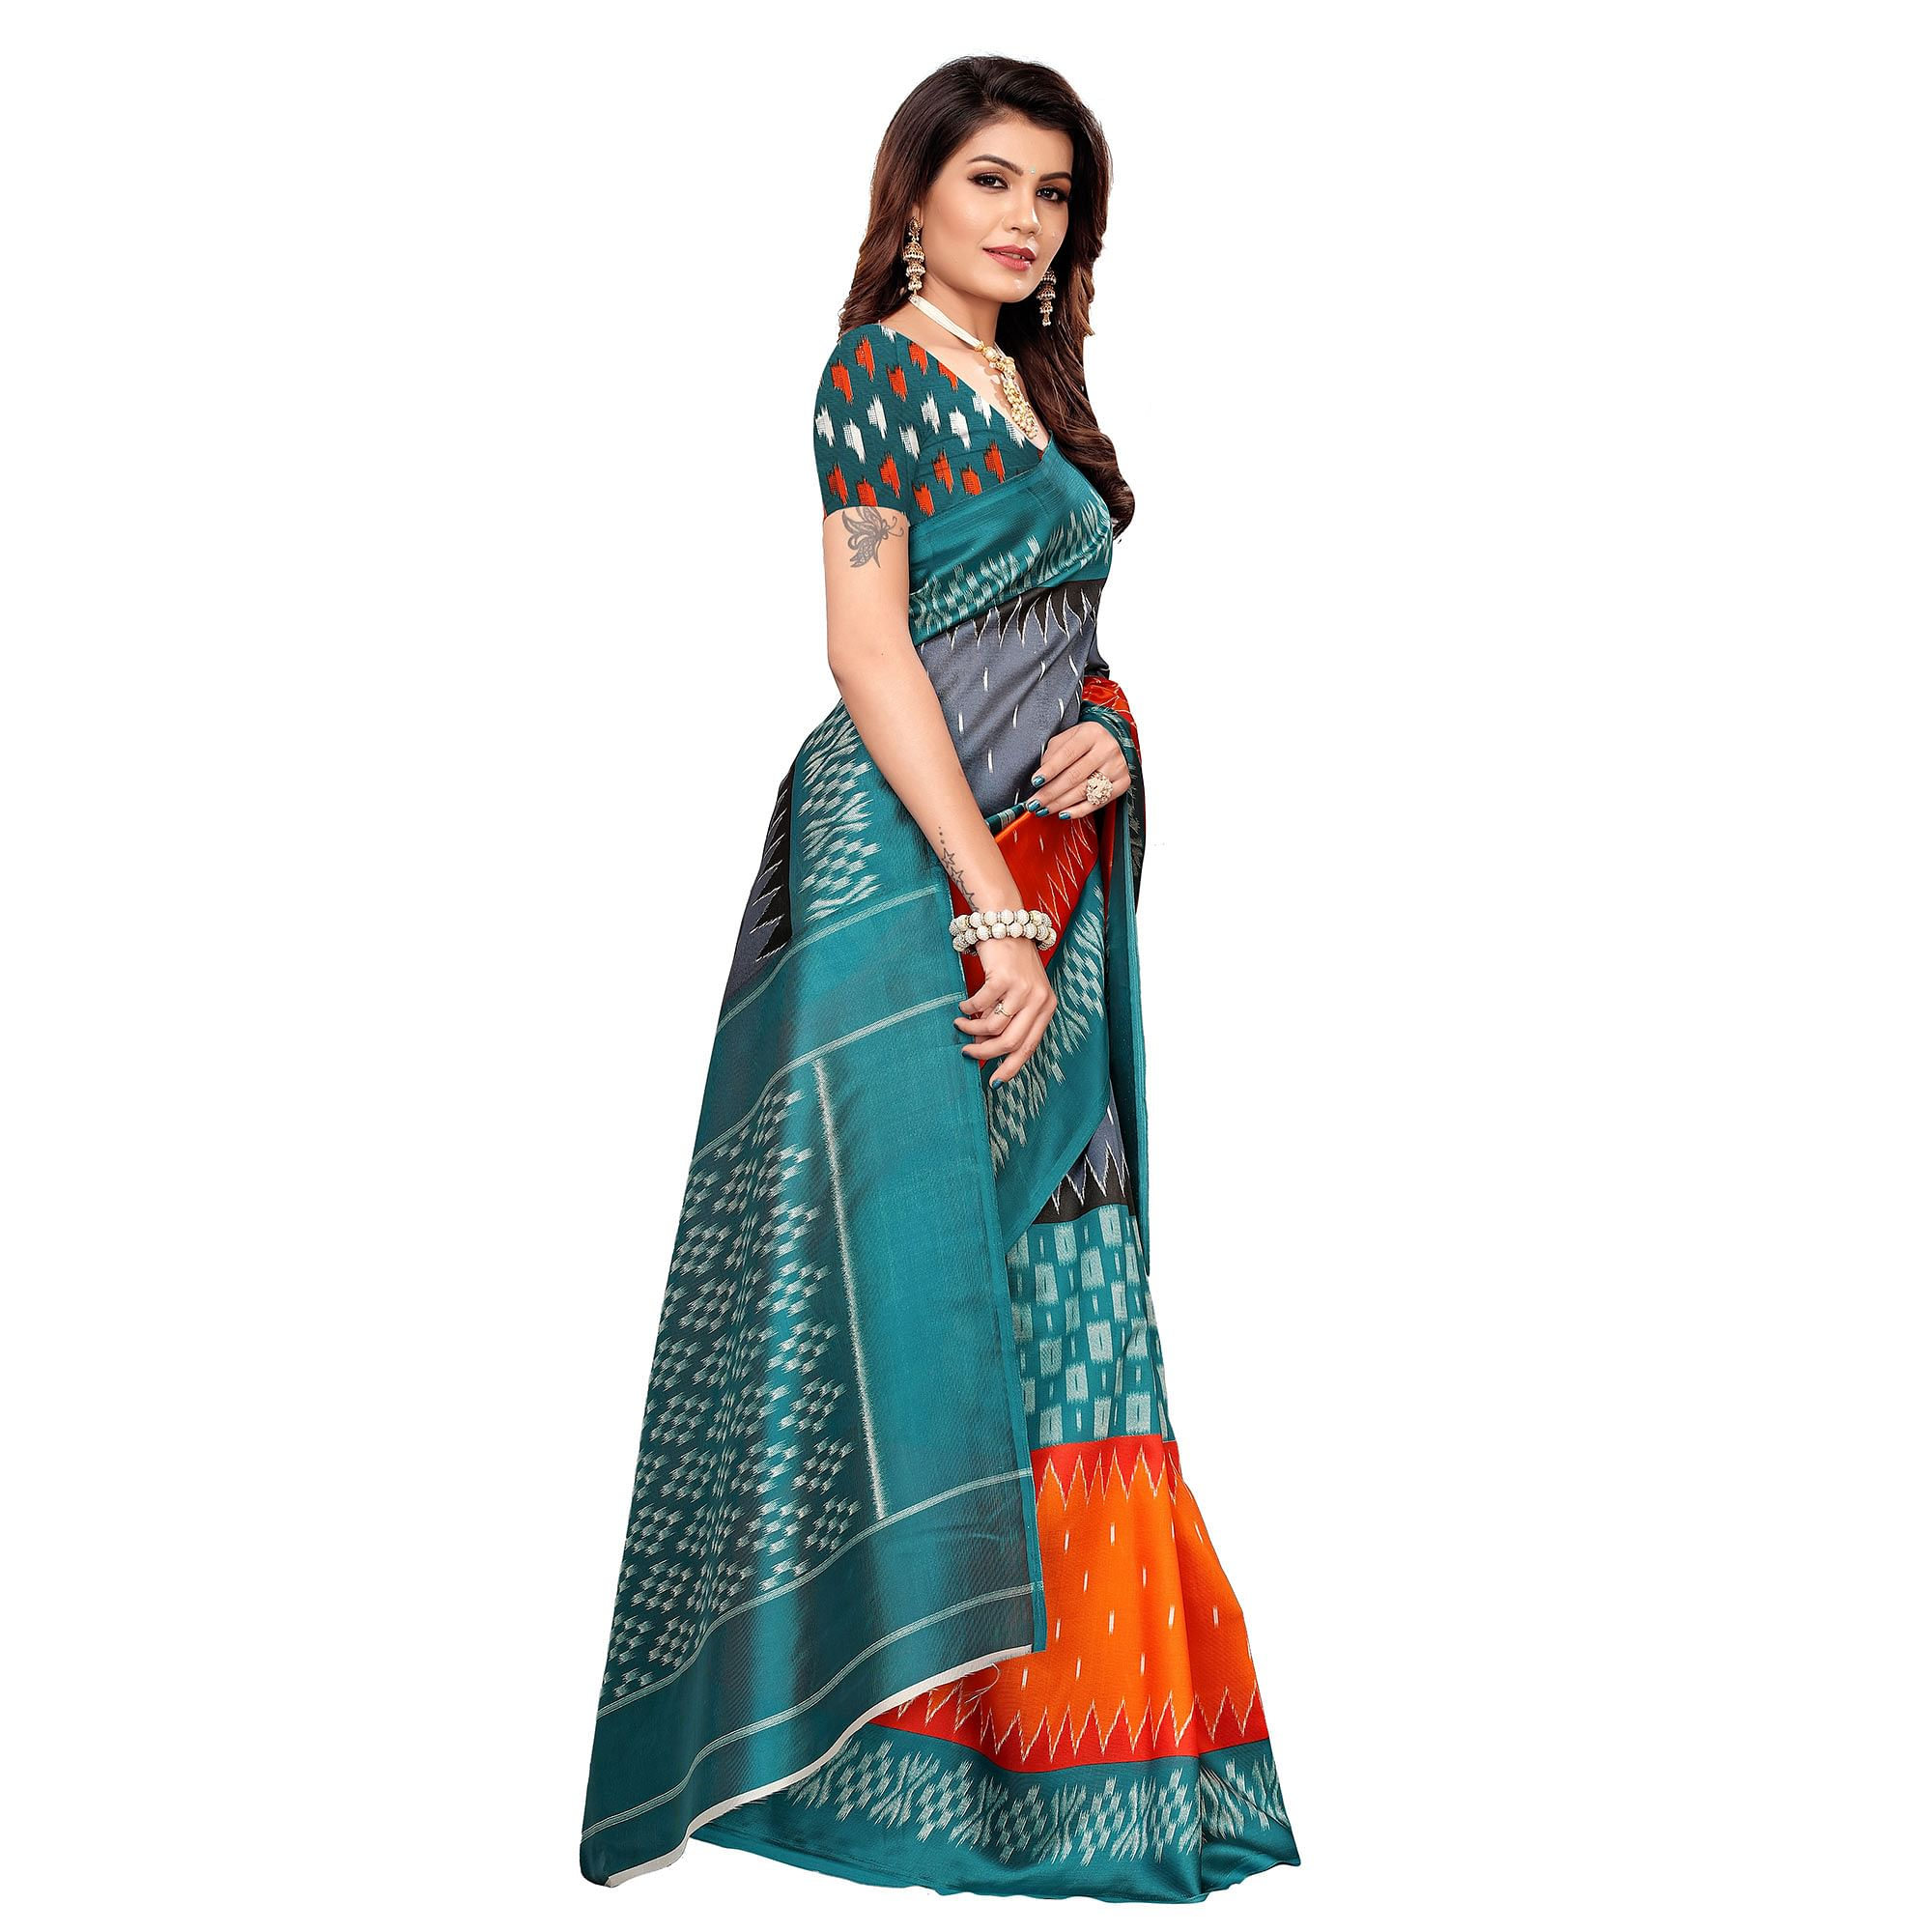 Engrossing Teal Blue-Multi Colored Casual Printed Mysore Silk Saree